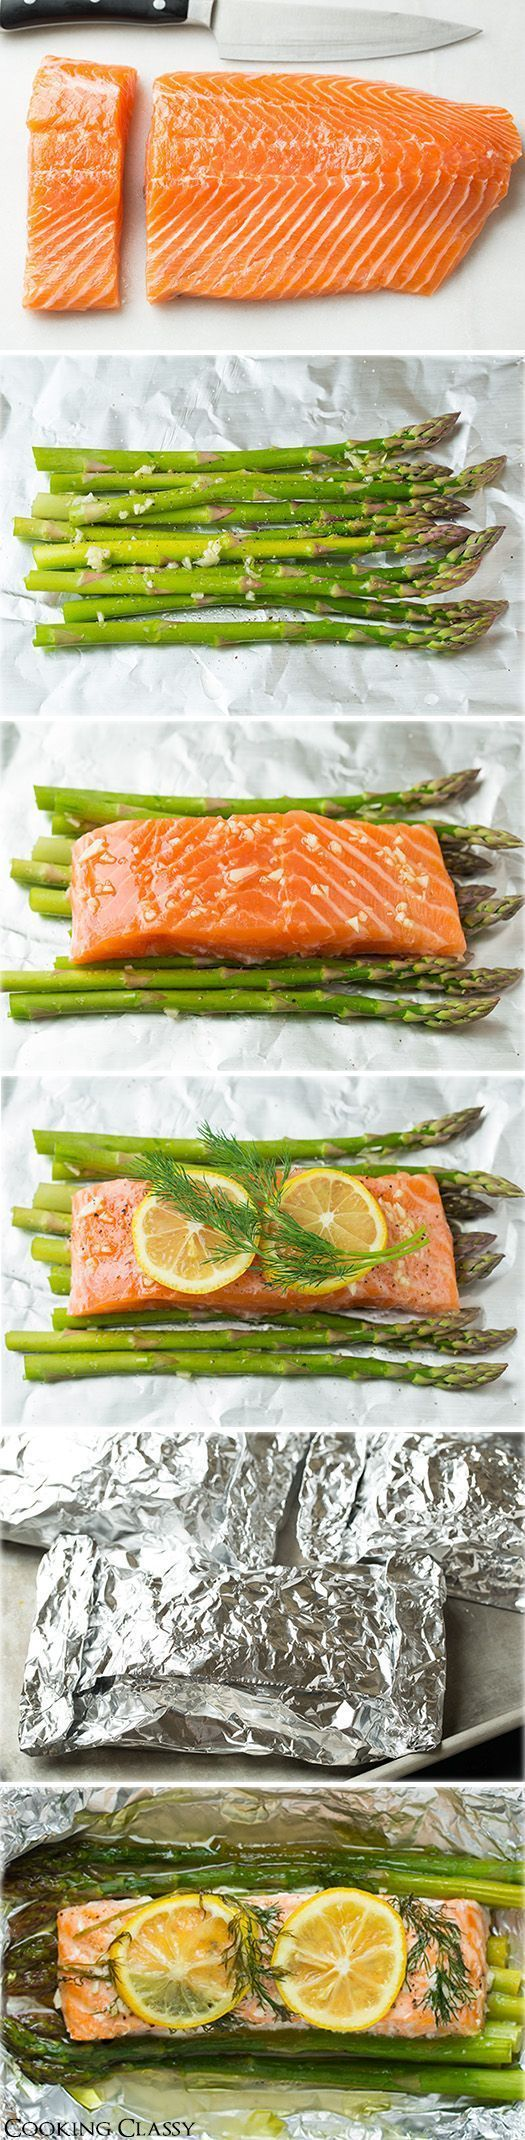 Baked Salmon and Asparagus in Foil - this is one of the easiest dinners ever, it tastes amazing, it's perfectly healthy and clean up is a breeze! Can't wait to try this!